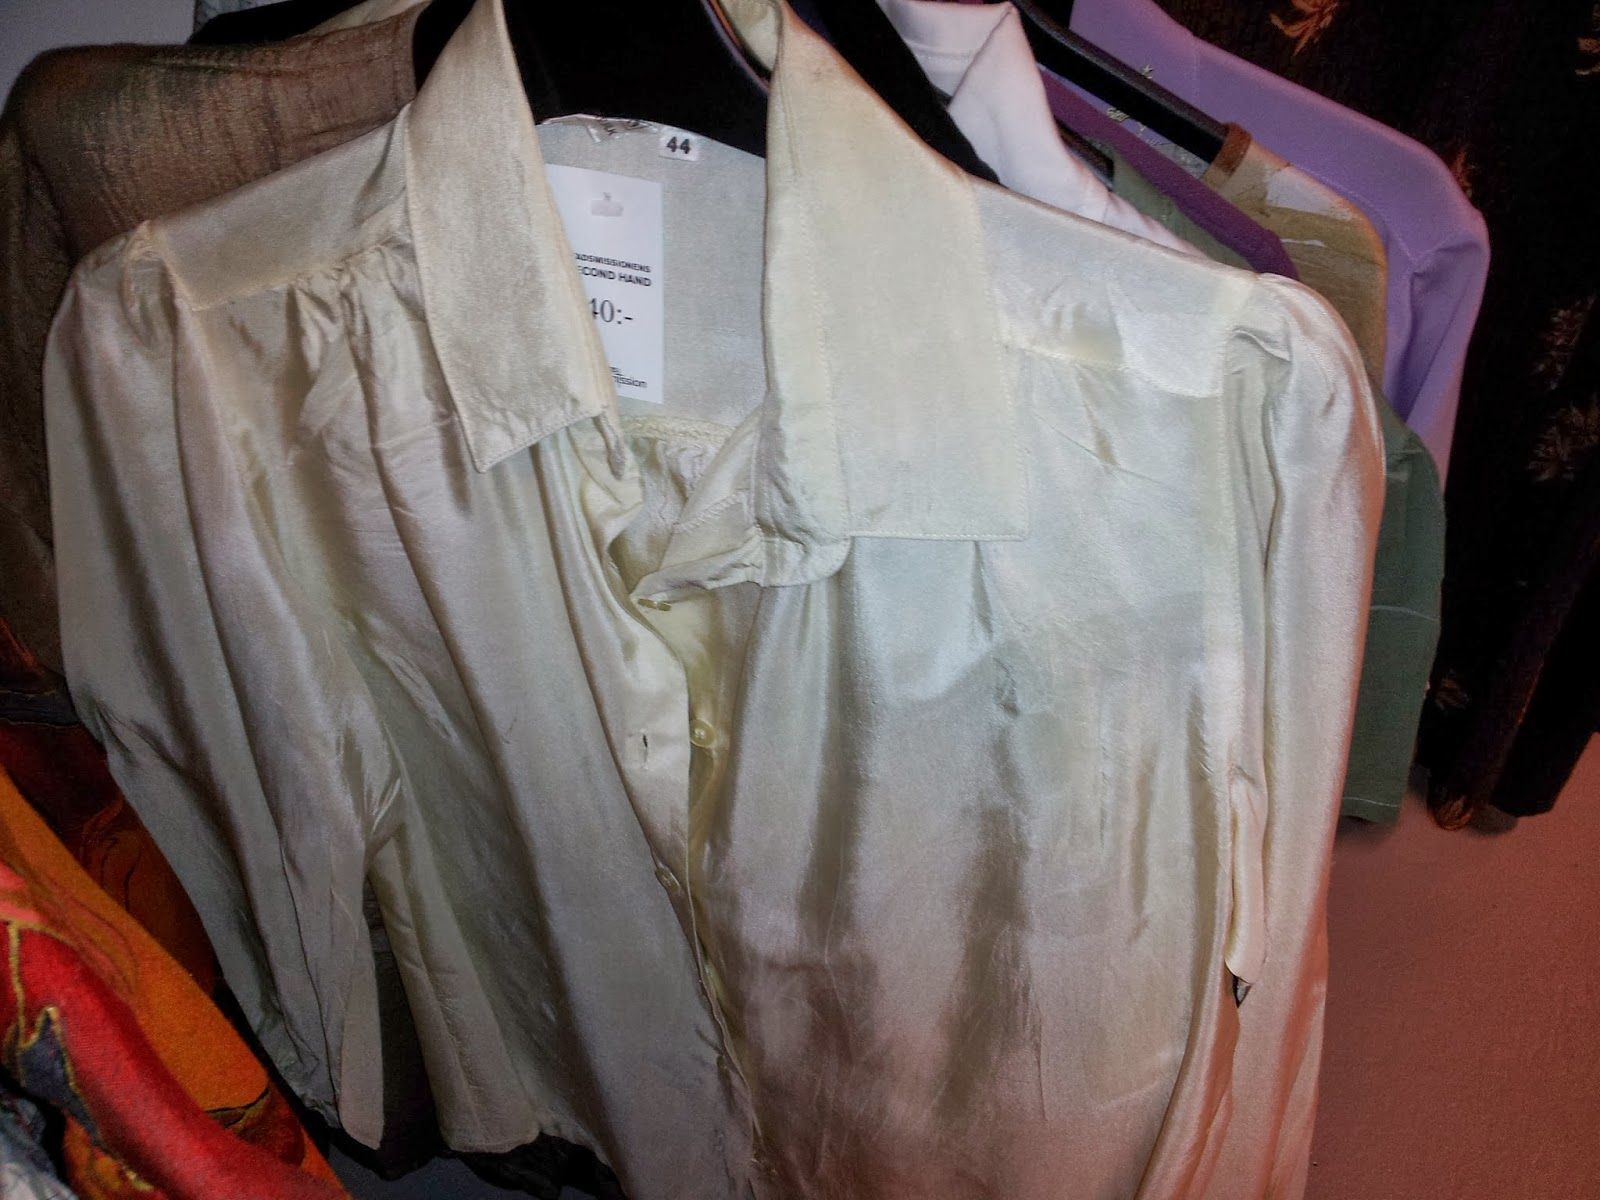 0f2f5bcbe4 Pure silk blouse that unfortunately has been mistreated by washing in to  high temperature. You can feel the difference - silk should be soft at  touch, ...